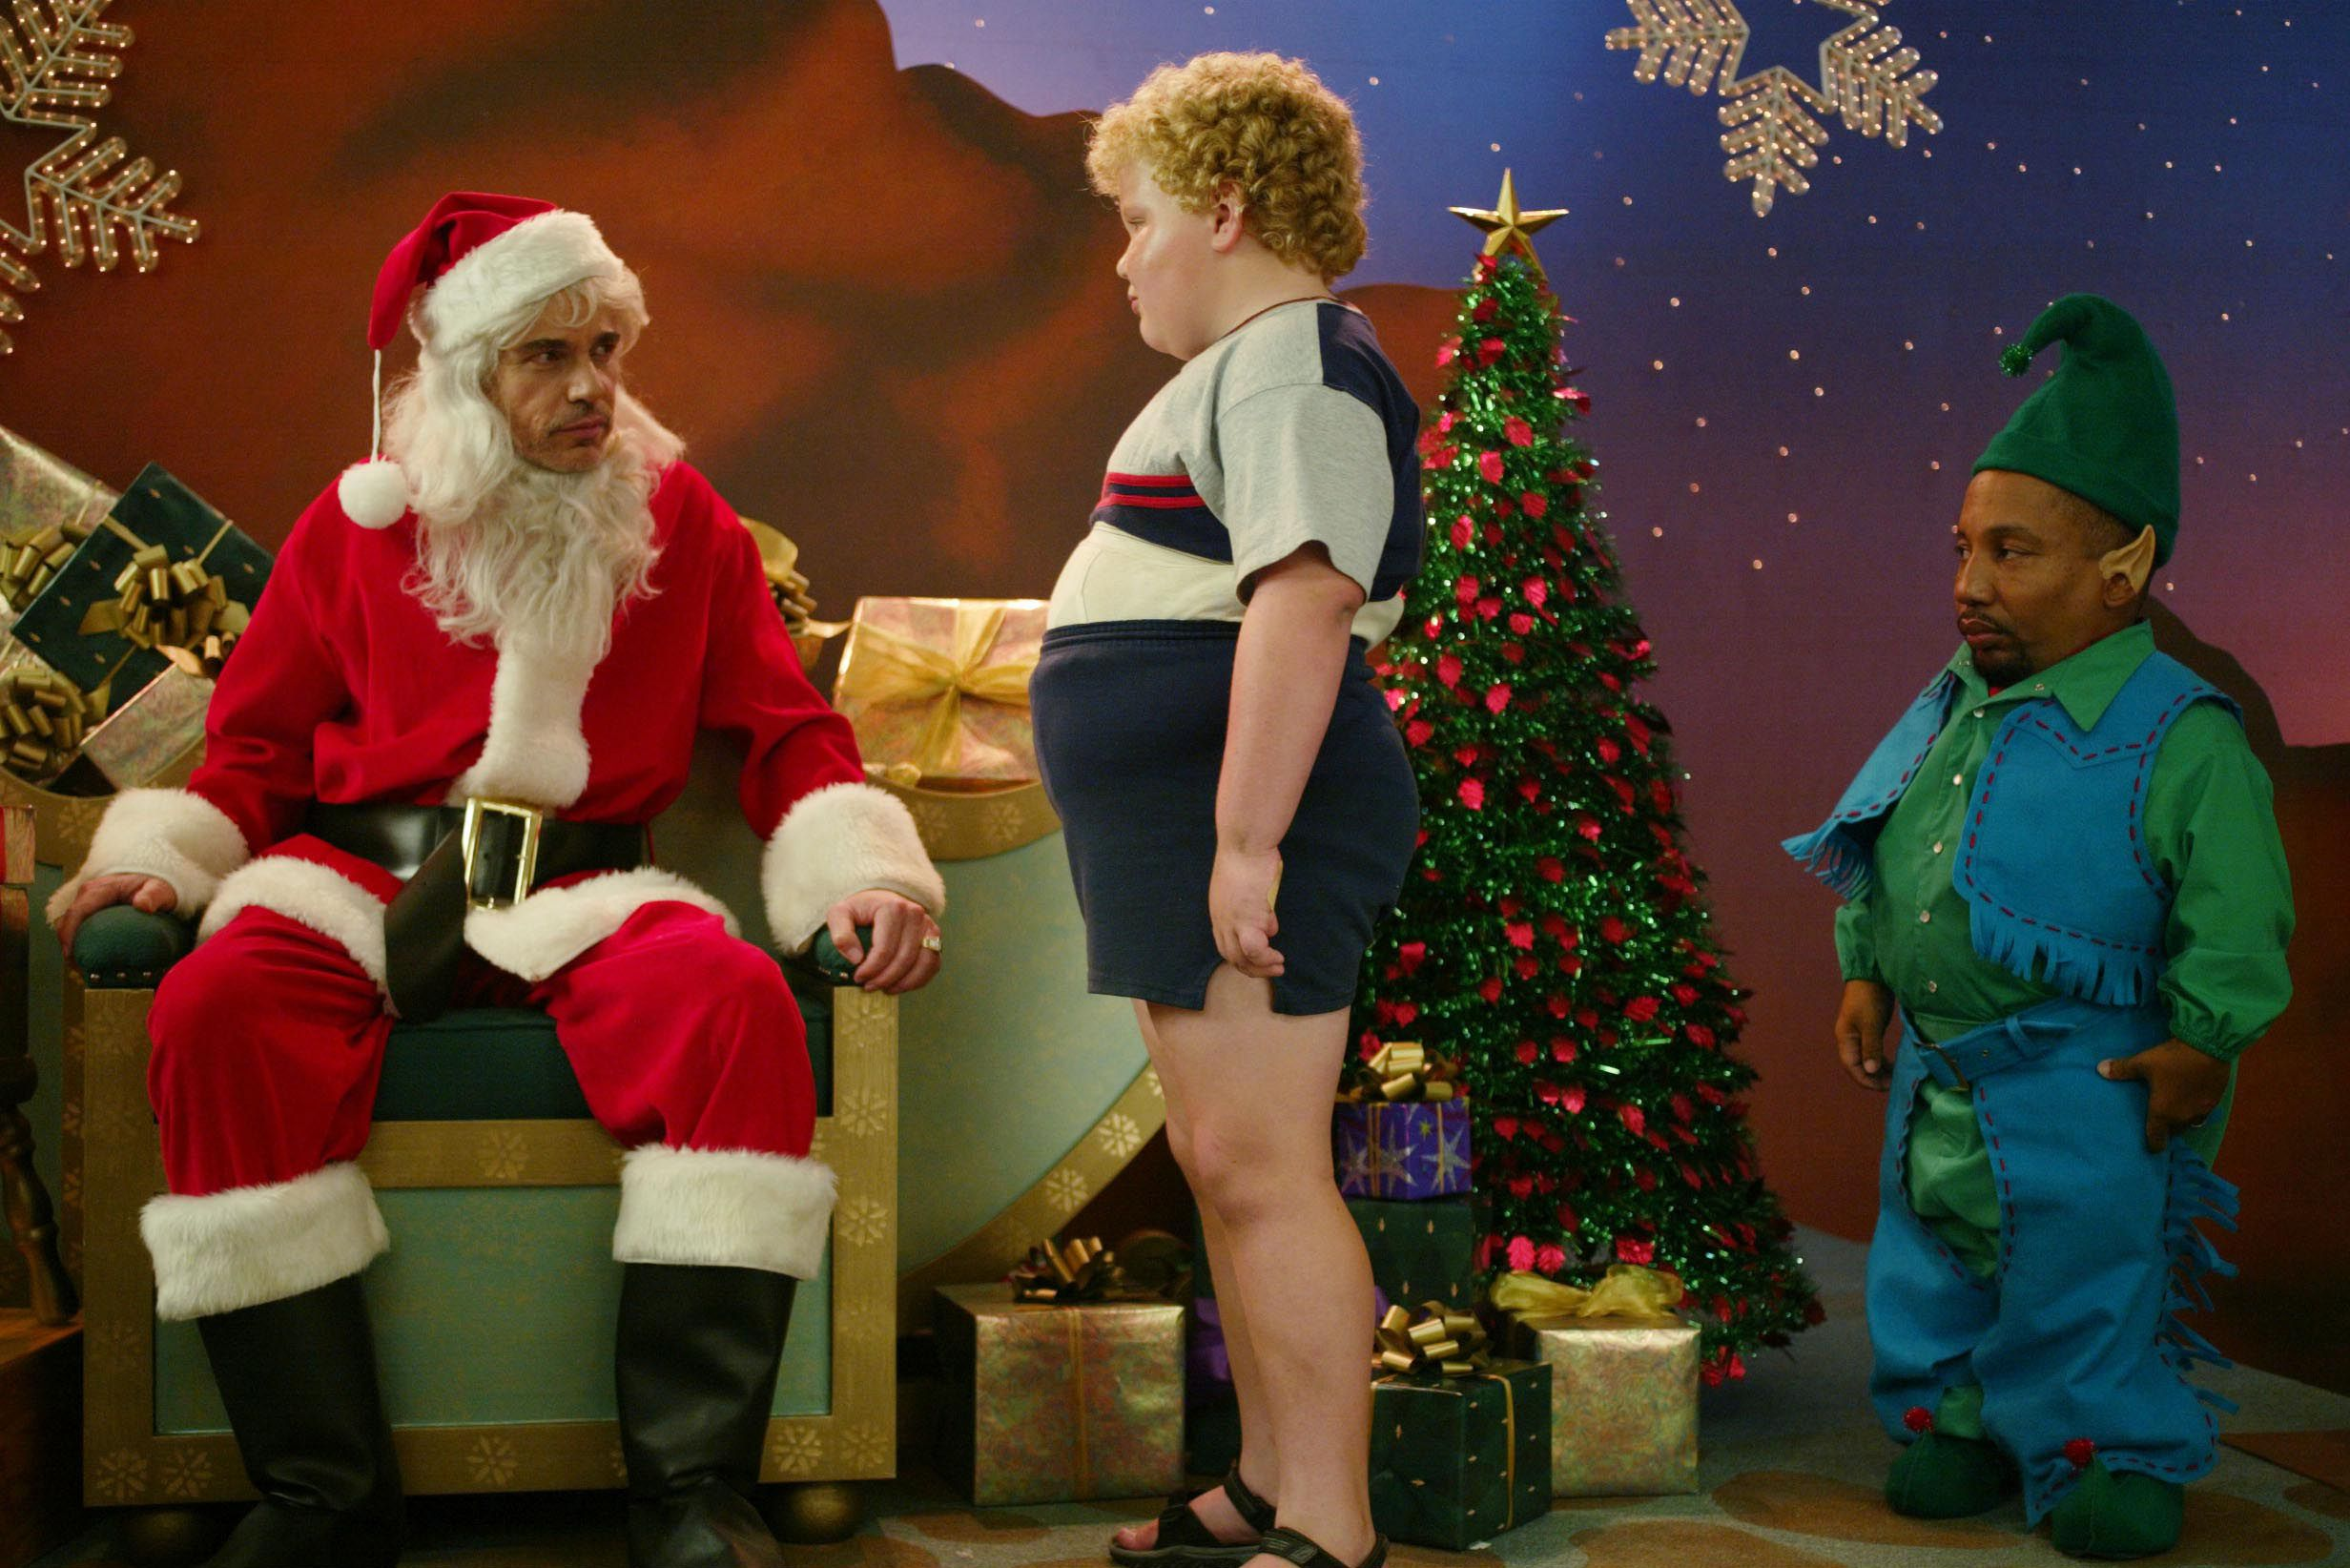 Bad Santa 2 First Images Posters Reveal Billy Bob Thornton Collider